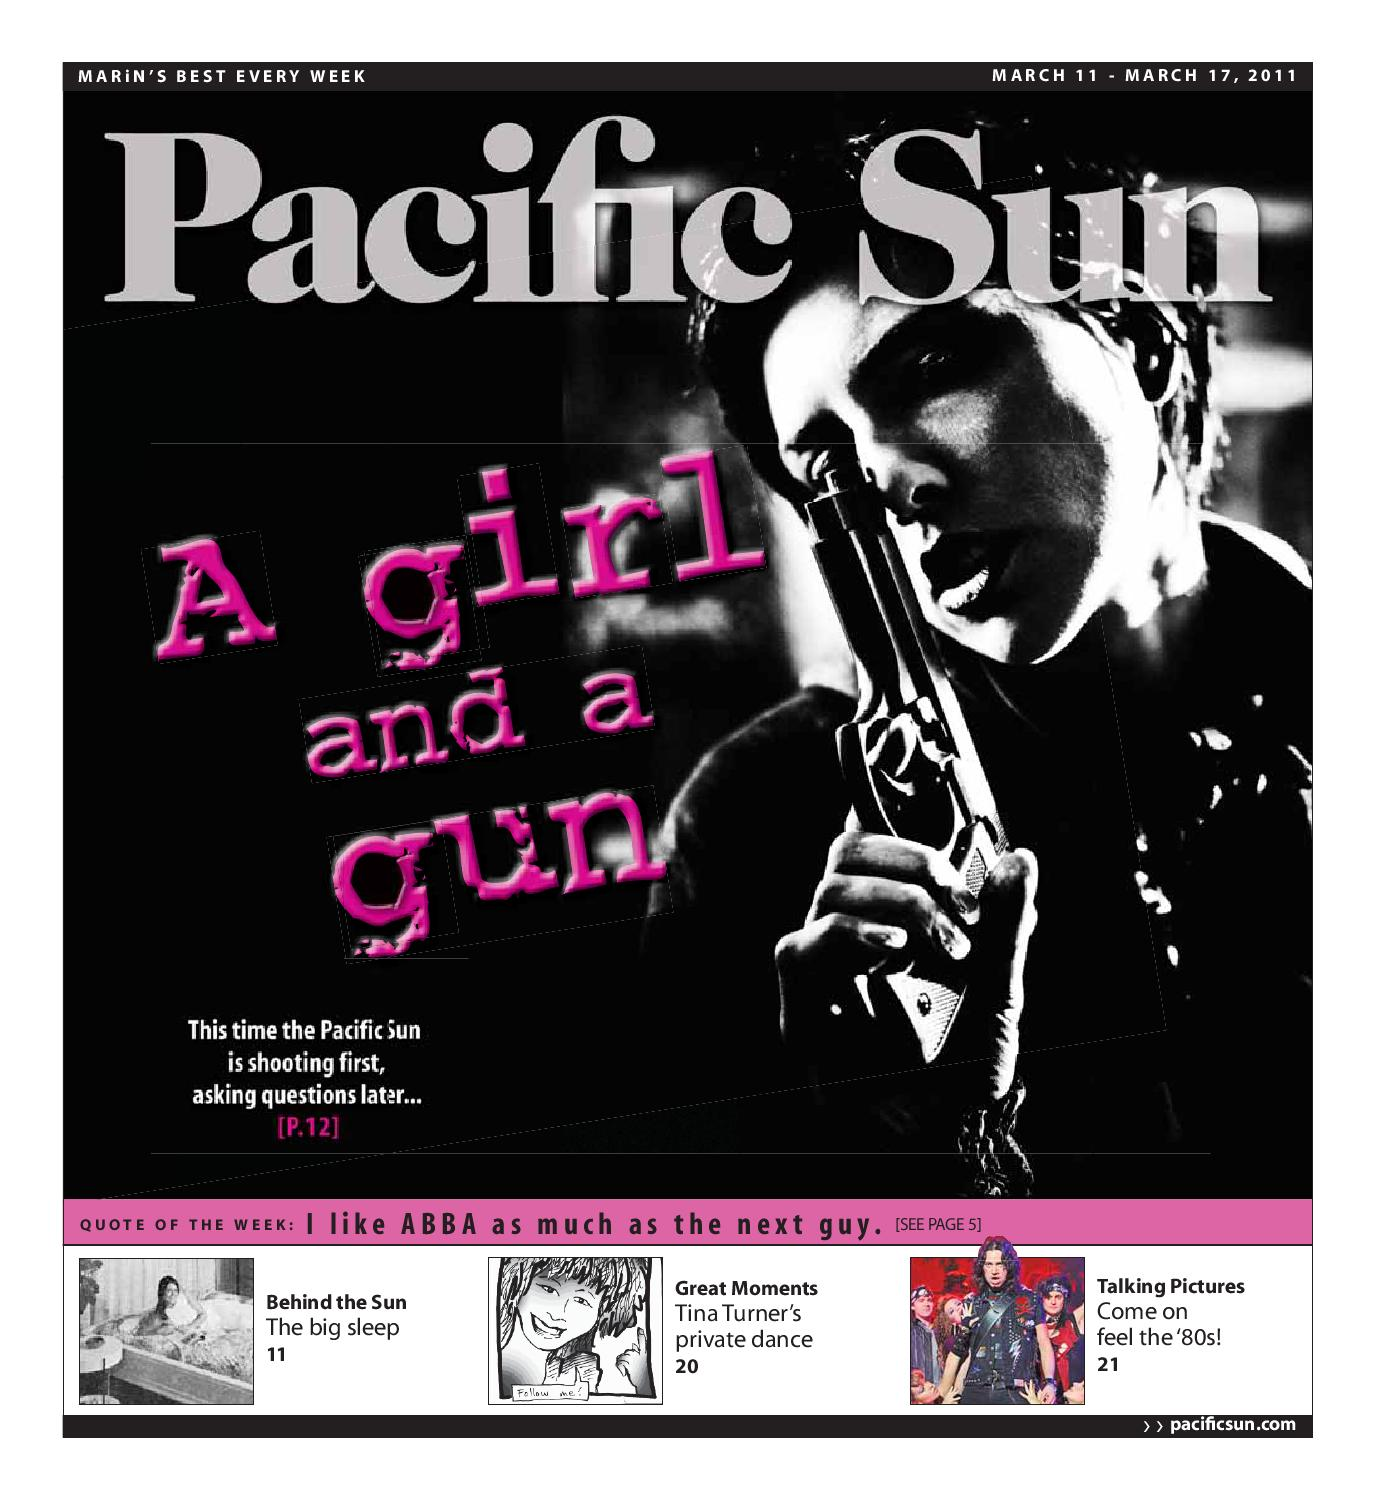 Pacific Sun Weekly 03 11 2011 - Section 1 by Pacific Sun - issuu